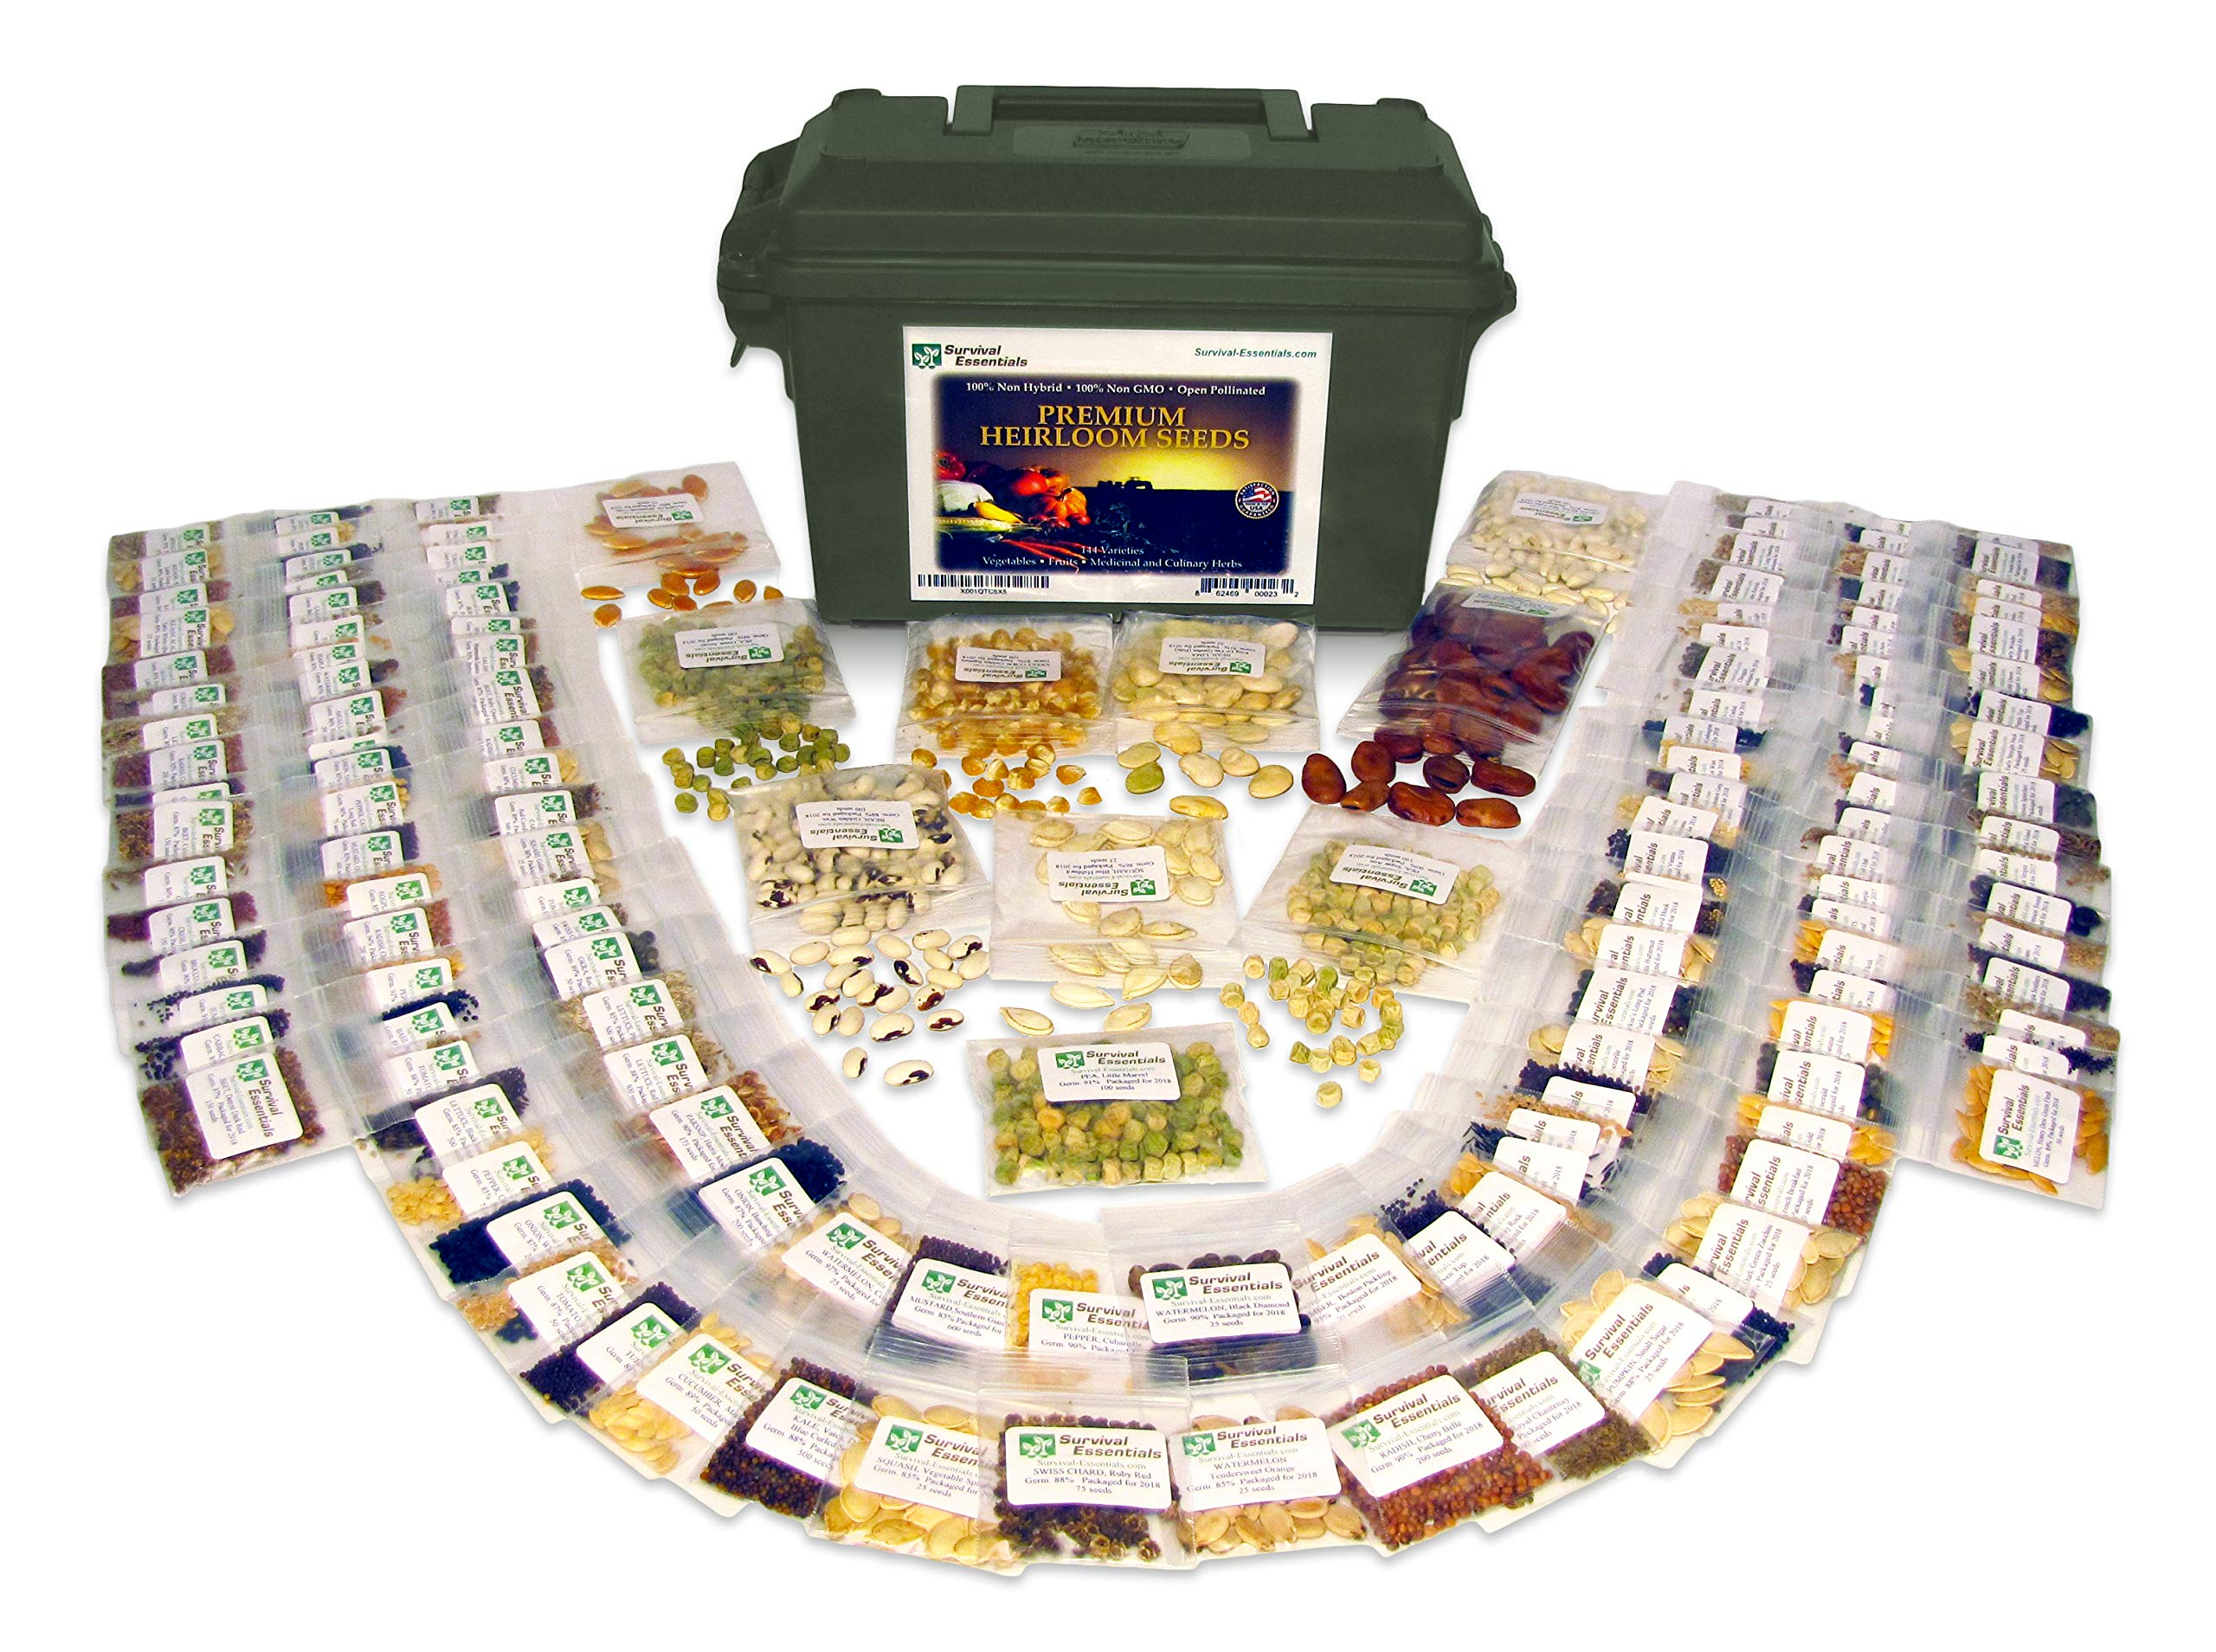 Survival Essentials 144 Variety Ultimate Heirloom Seed Vault for Survival and Preparedness - 23,335+ Non-GMO Heirloom Seeds Packed in Superior Ammo Can for Long-Term Storage and Maximum Shelf Life by Survival Essentials